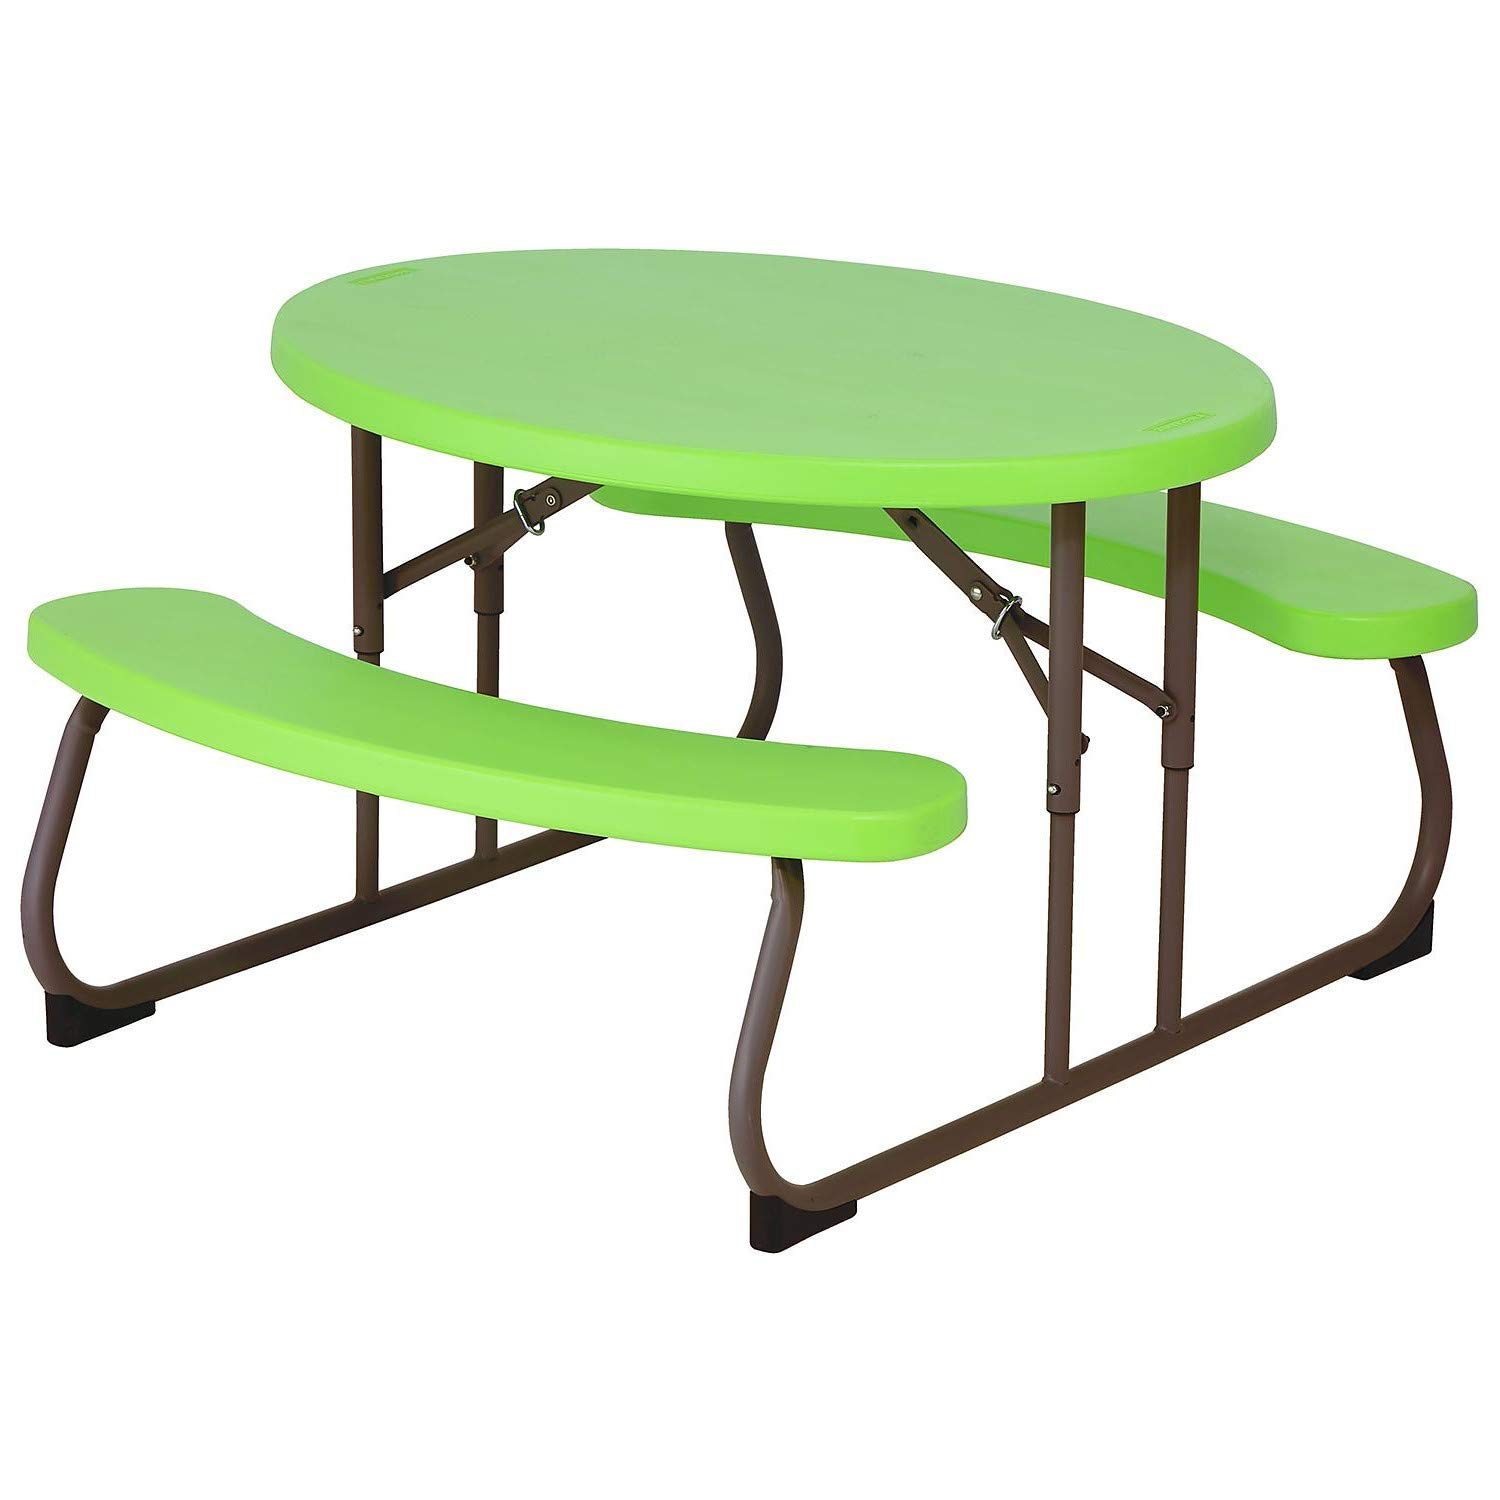 STS SUPPLIES Toddler Picnic Table Oval for Kids Outdoor Metal Plastic Child Commercial Compact Outside Dinner Dining Lounger Furniture & E Book by Easy2Find.